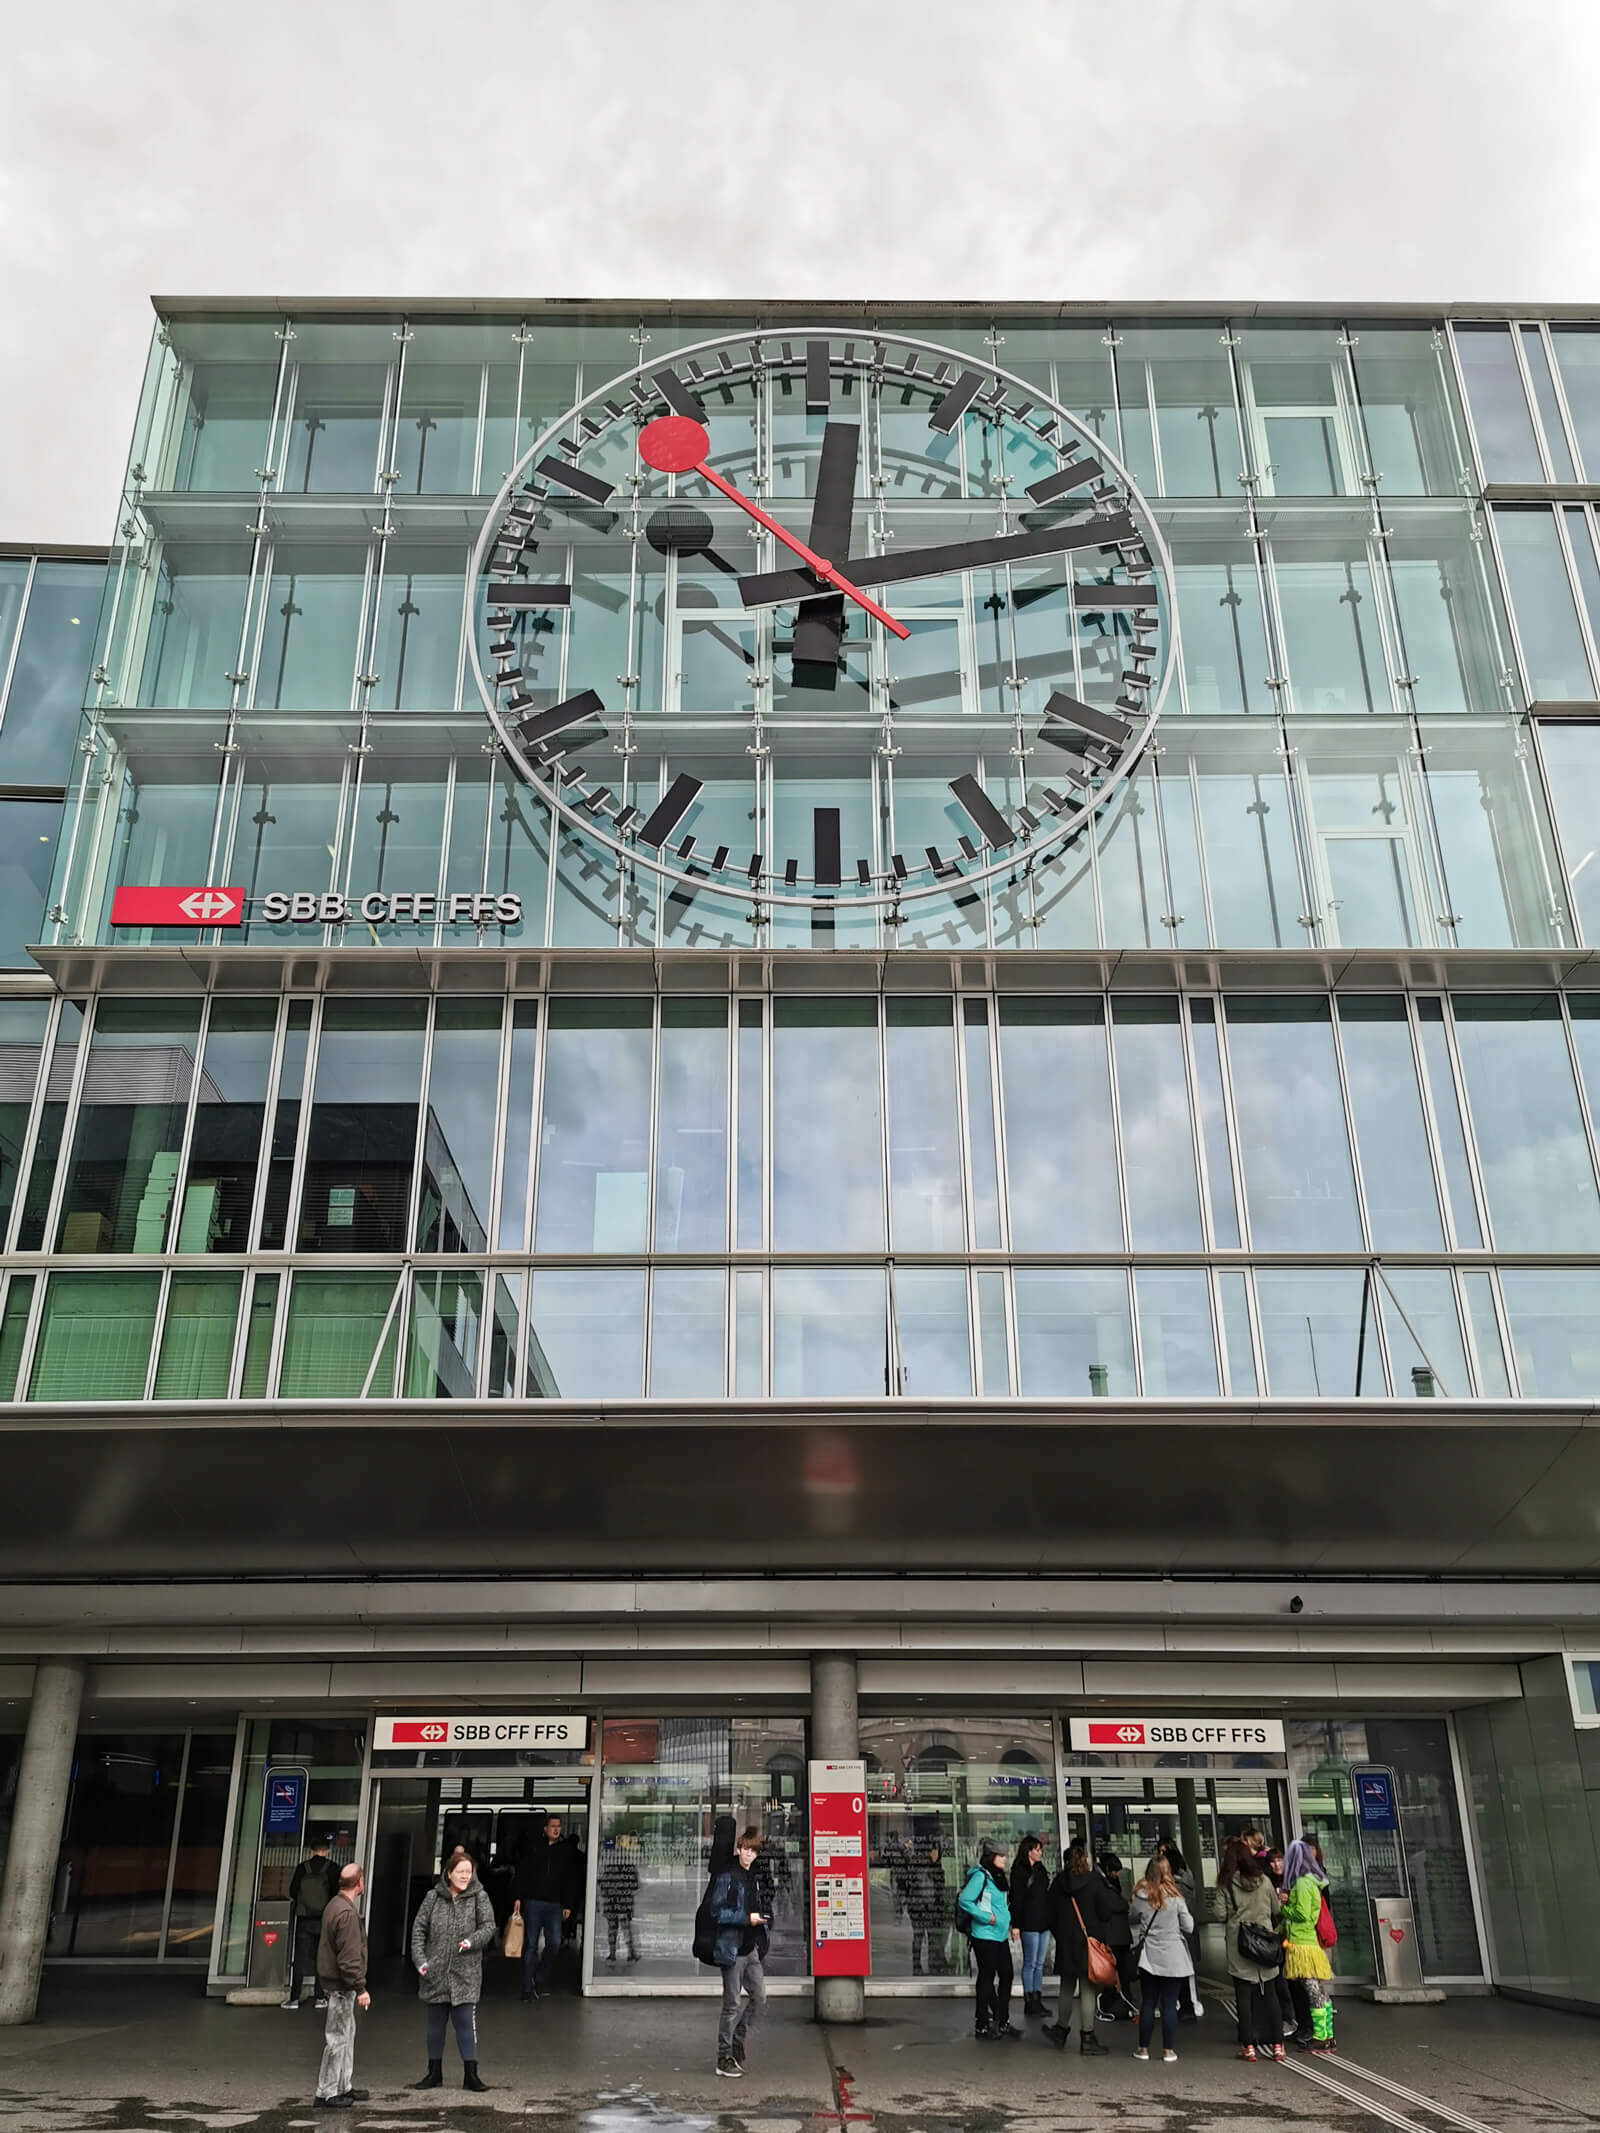 Cool Switzerland facts - the Aargau station clock